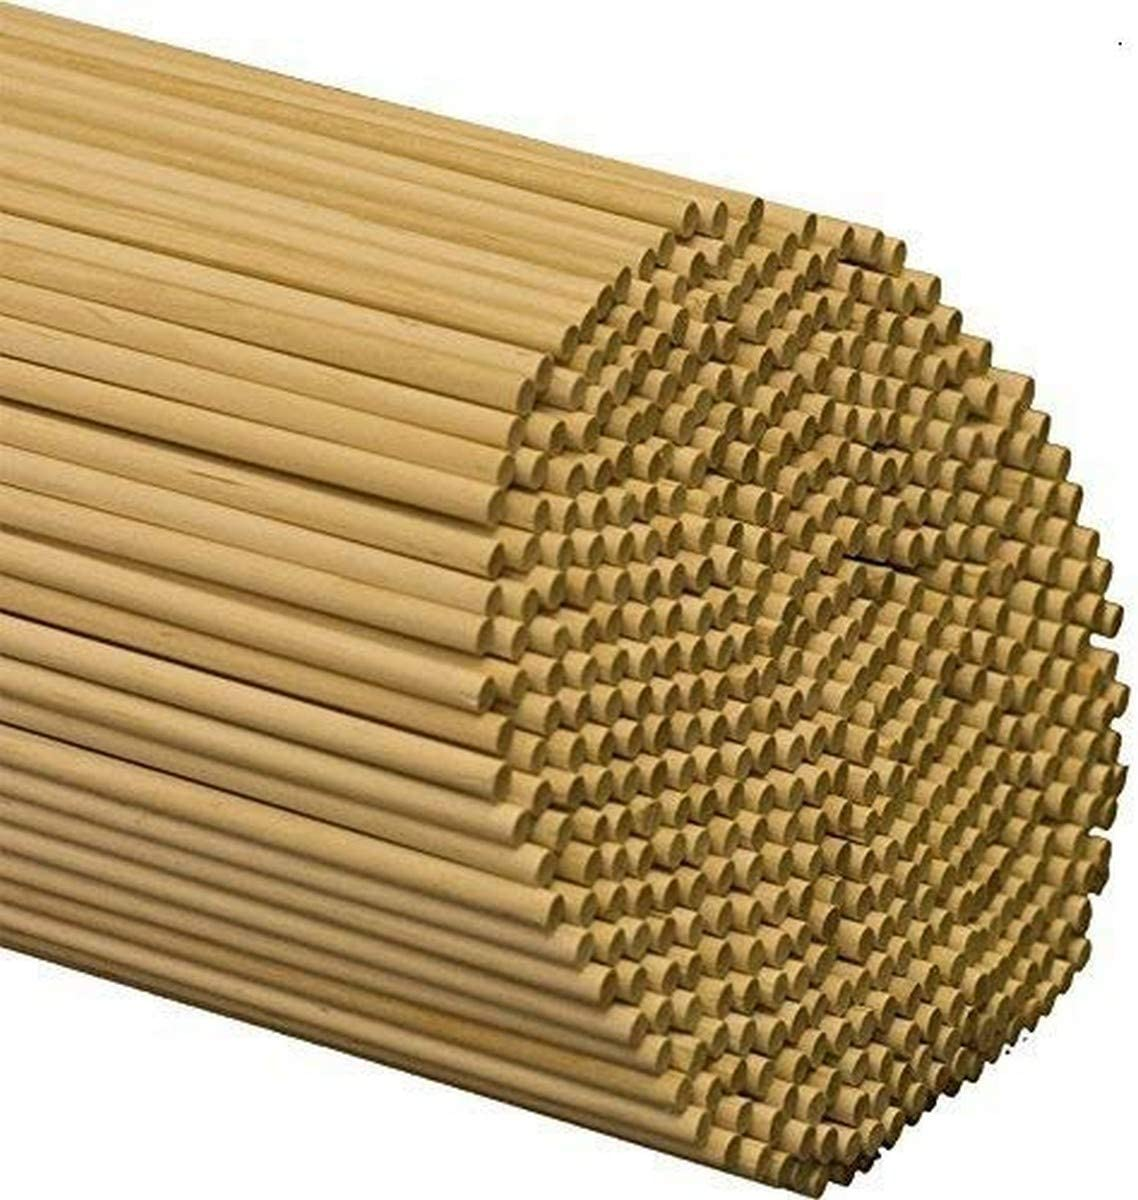 Pinehurst Crafts 3//16 Inch x 36 Inch Unfinished Wood Dowel Rods Pack of 50